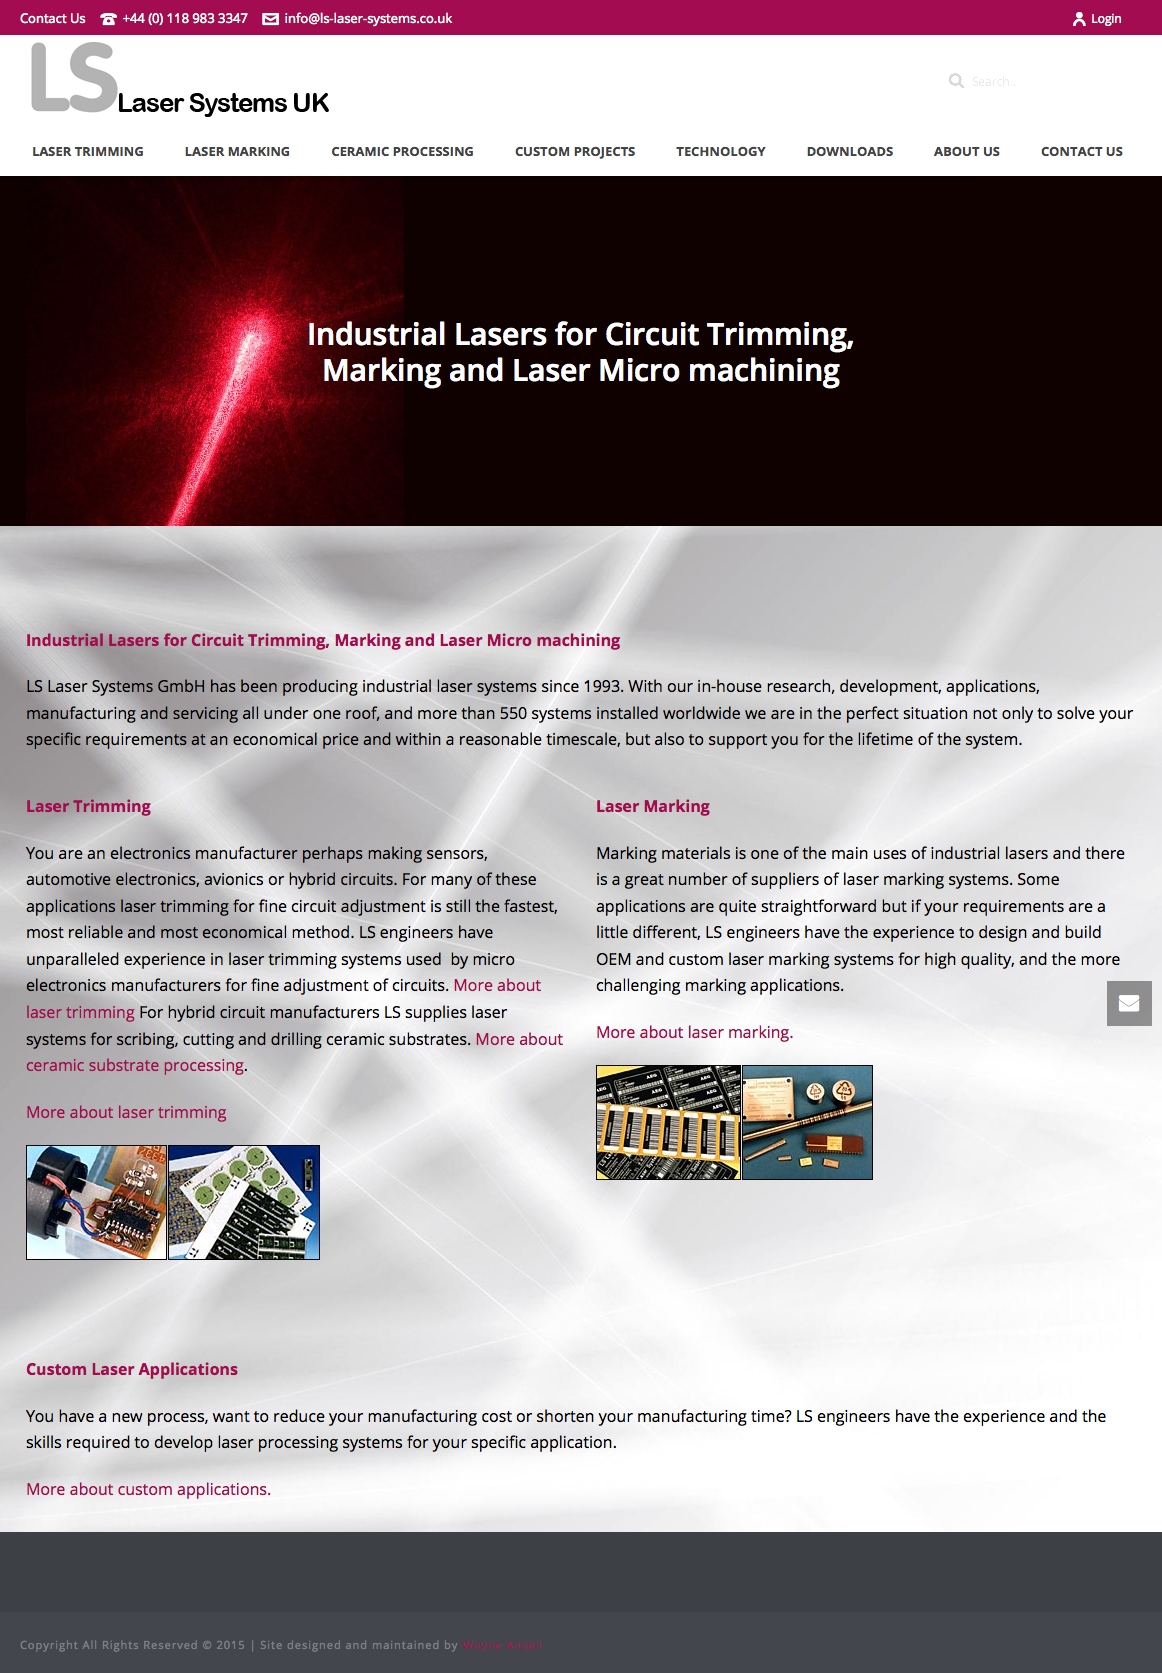 ls-laser-systems